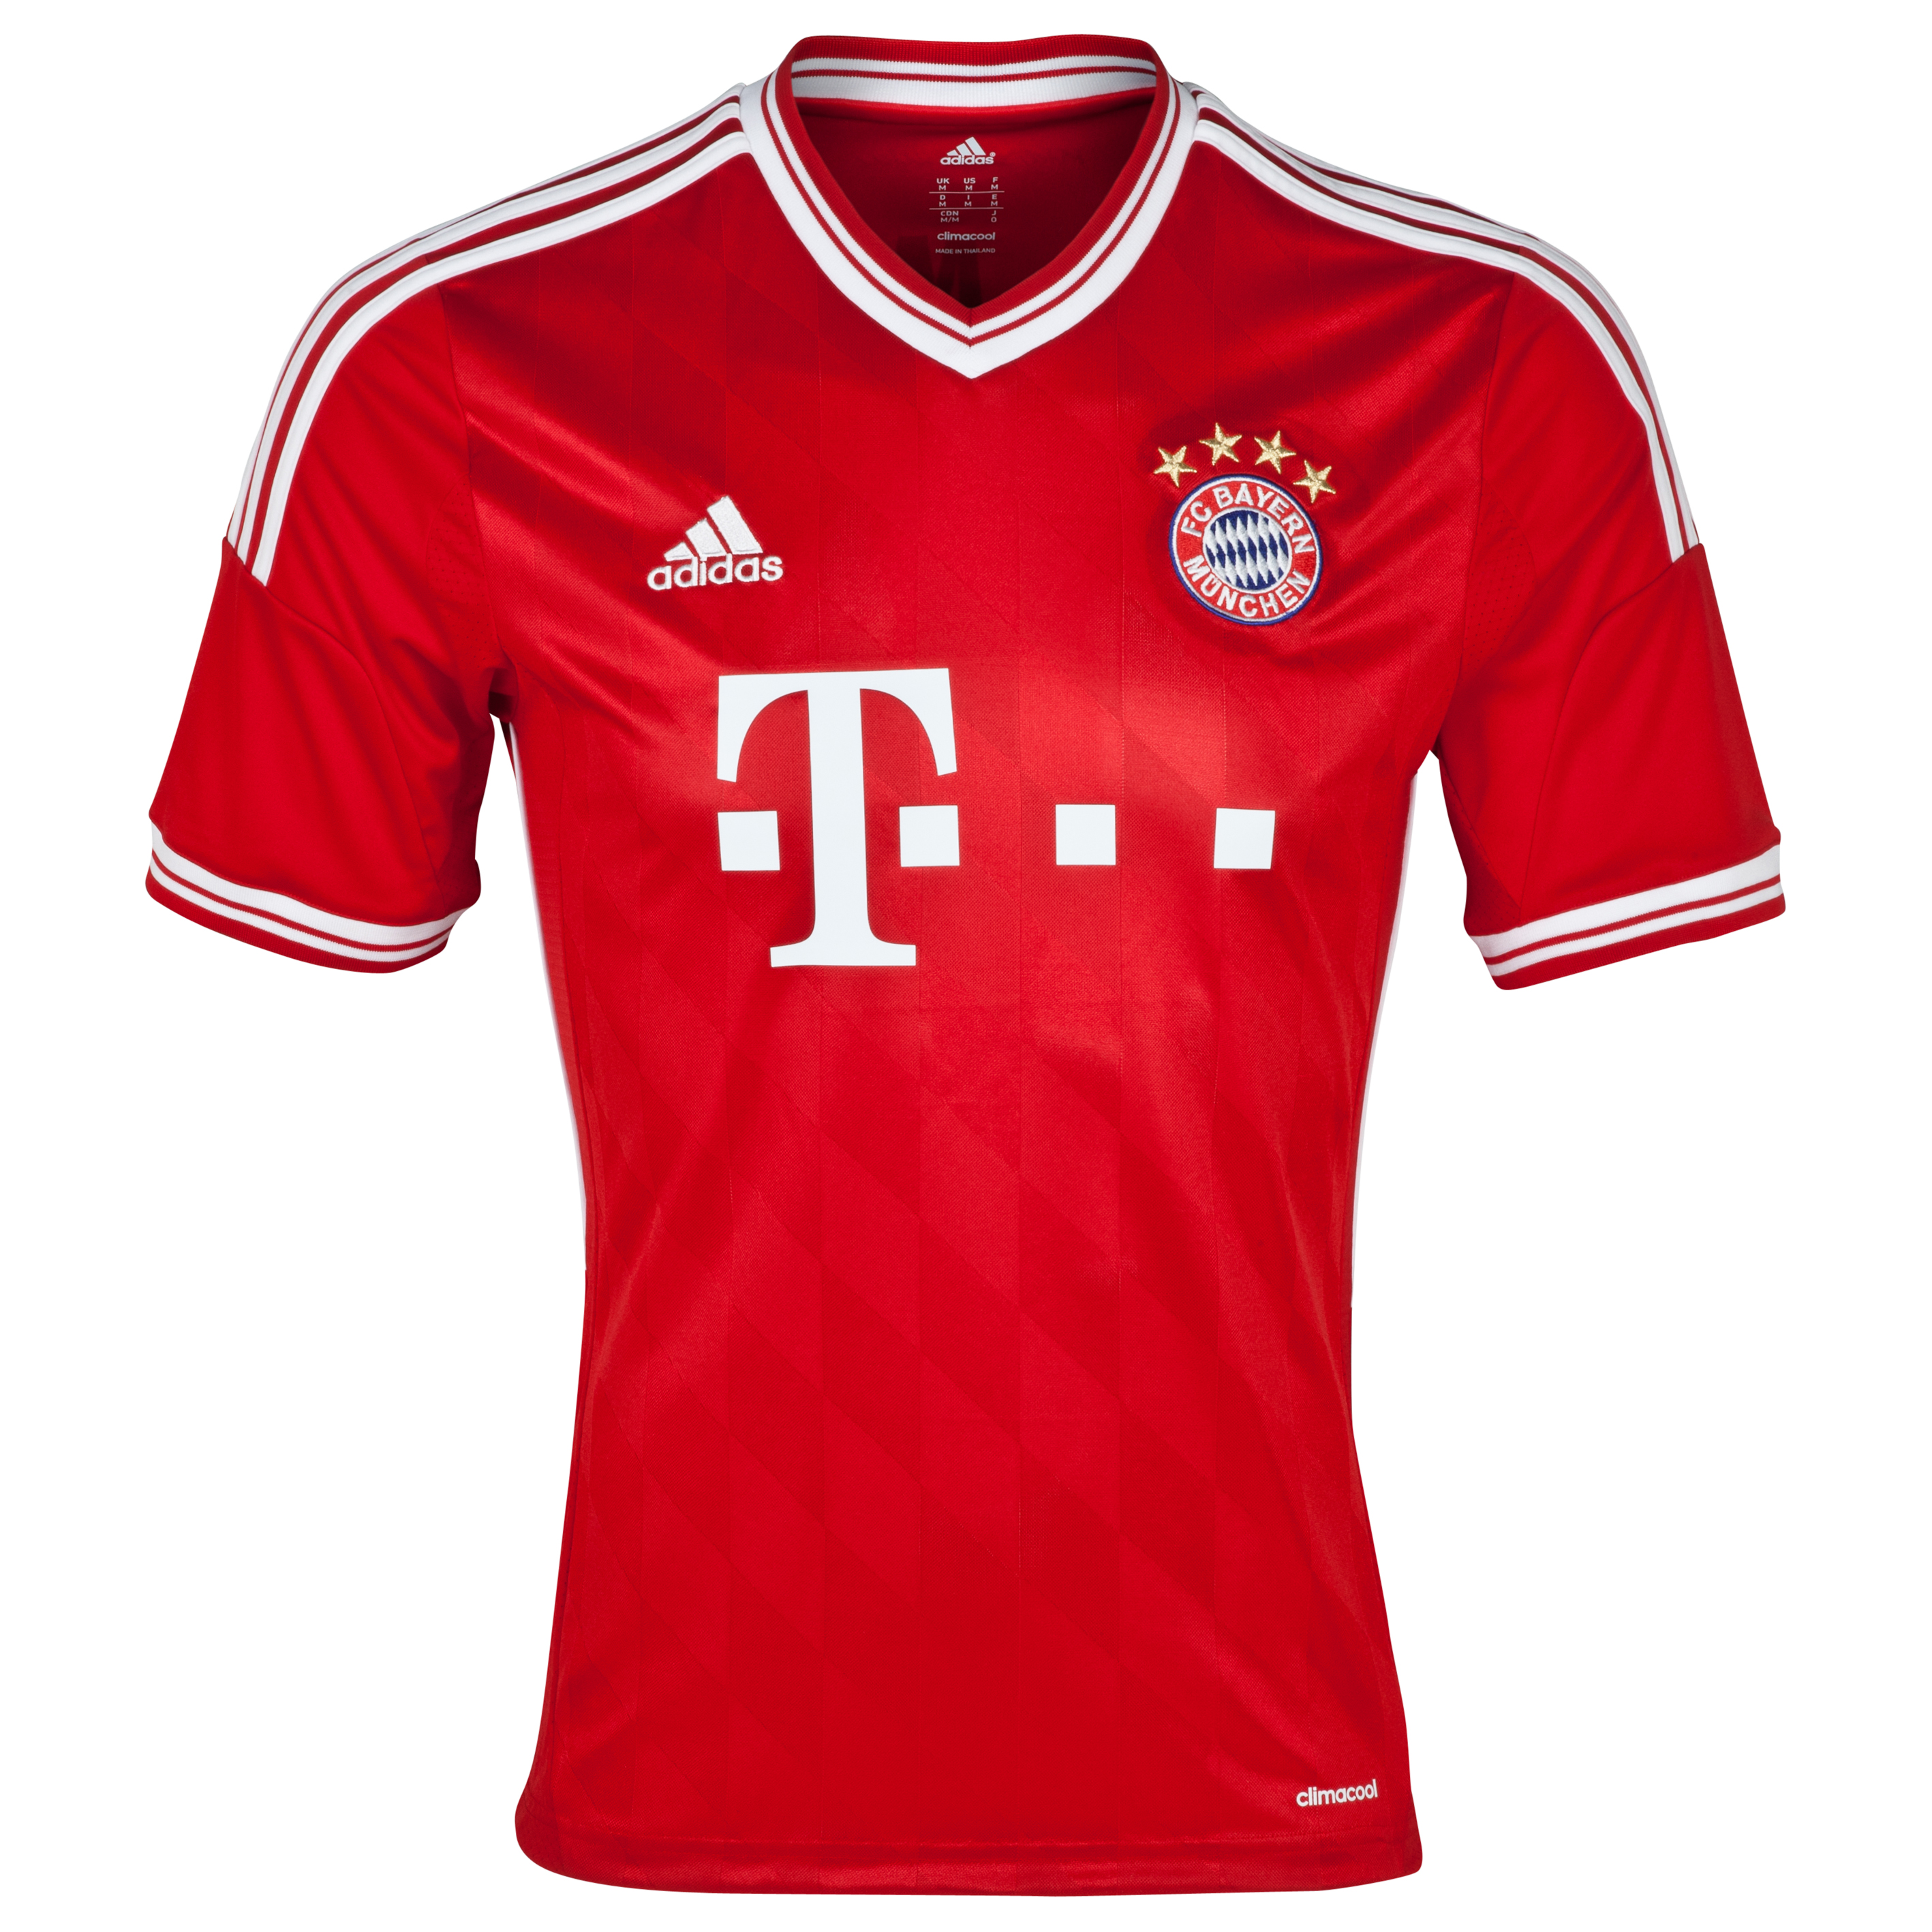 Buy Bayern Munich Home Kit 2013/14